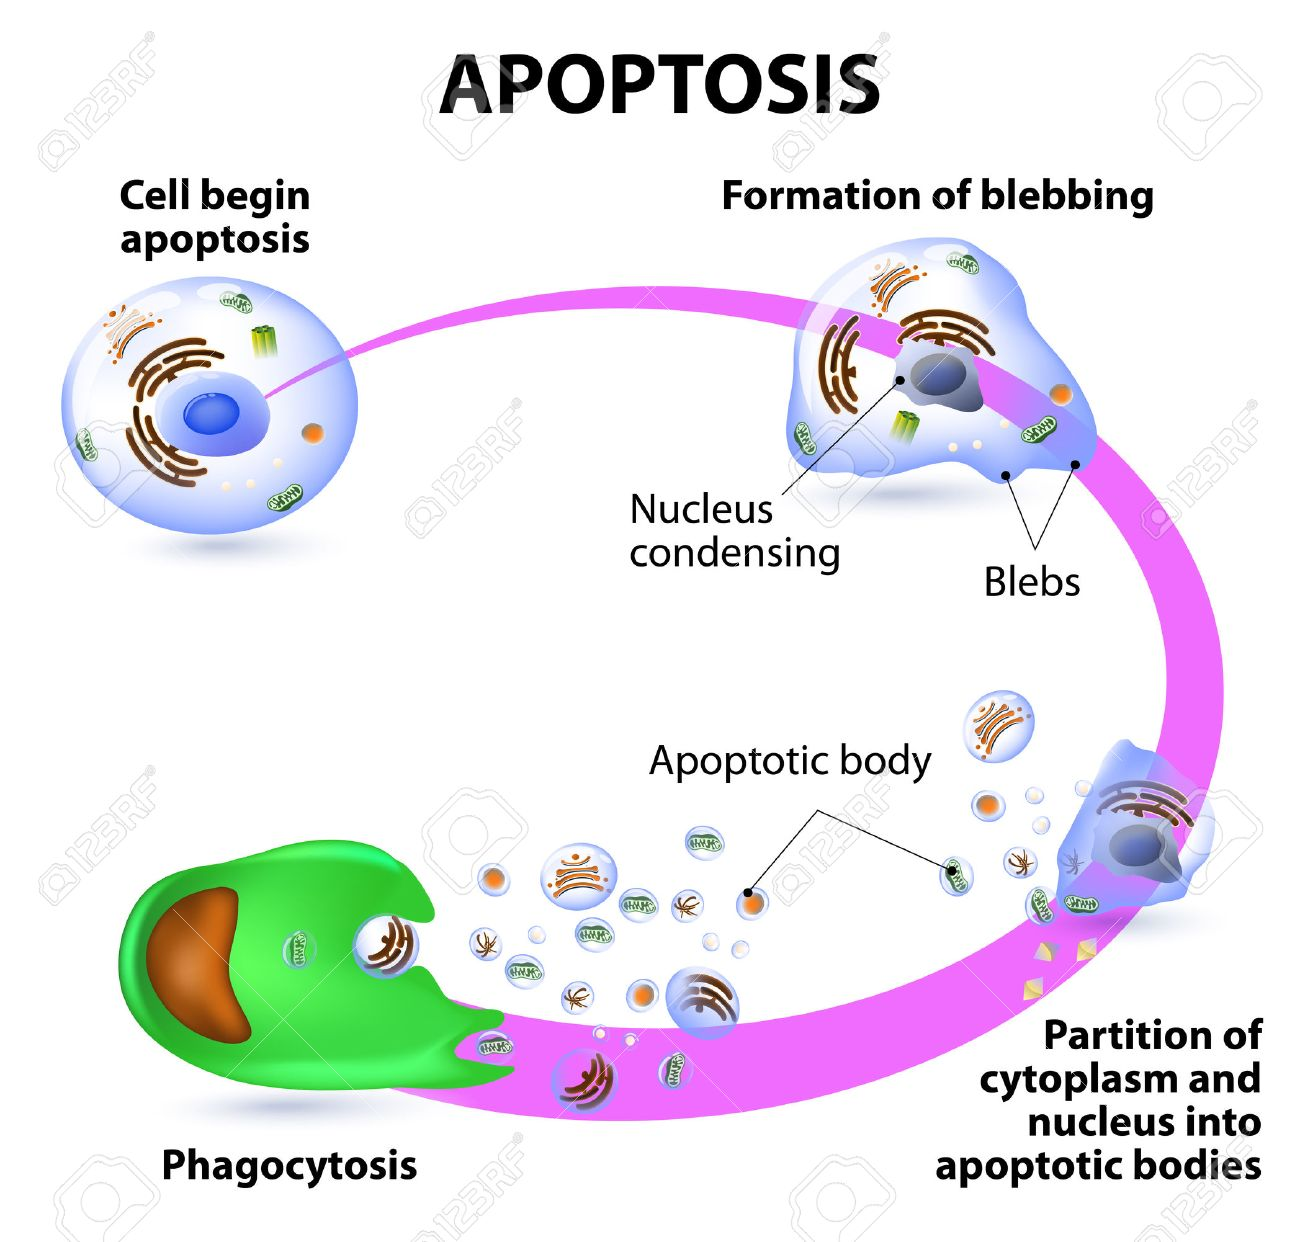 Apoptosis is the process of programmed cell death vector diagram apoptosis is the process of programmed cell death vector diagram imagens 32708575 ccuart Images